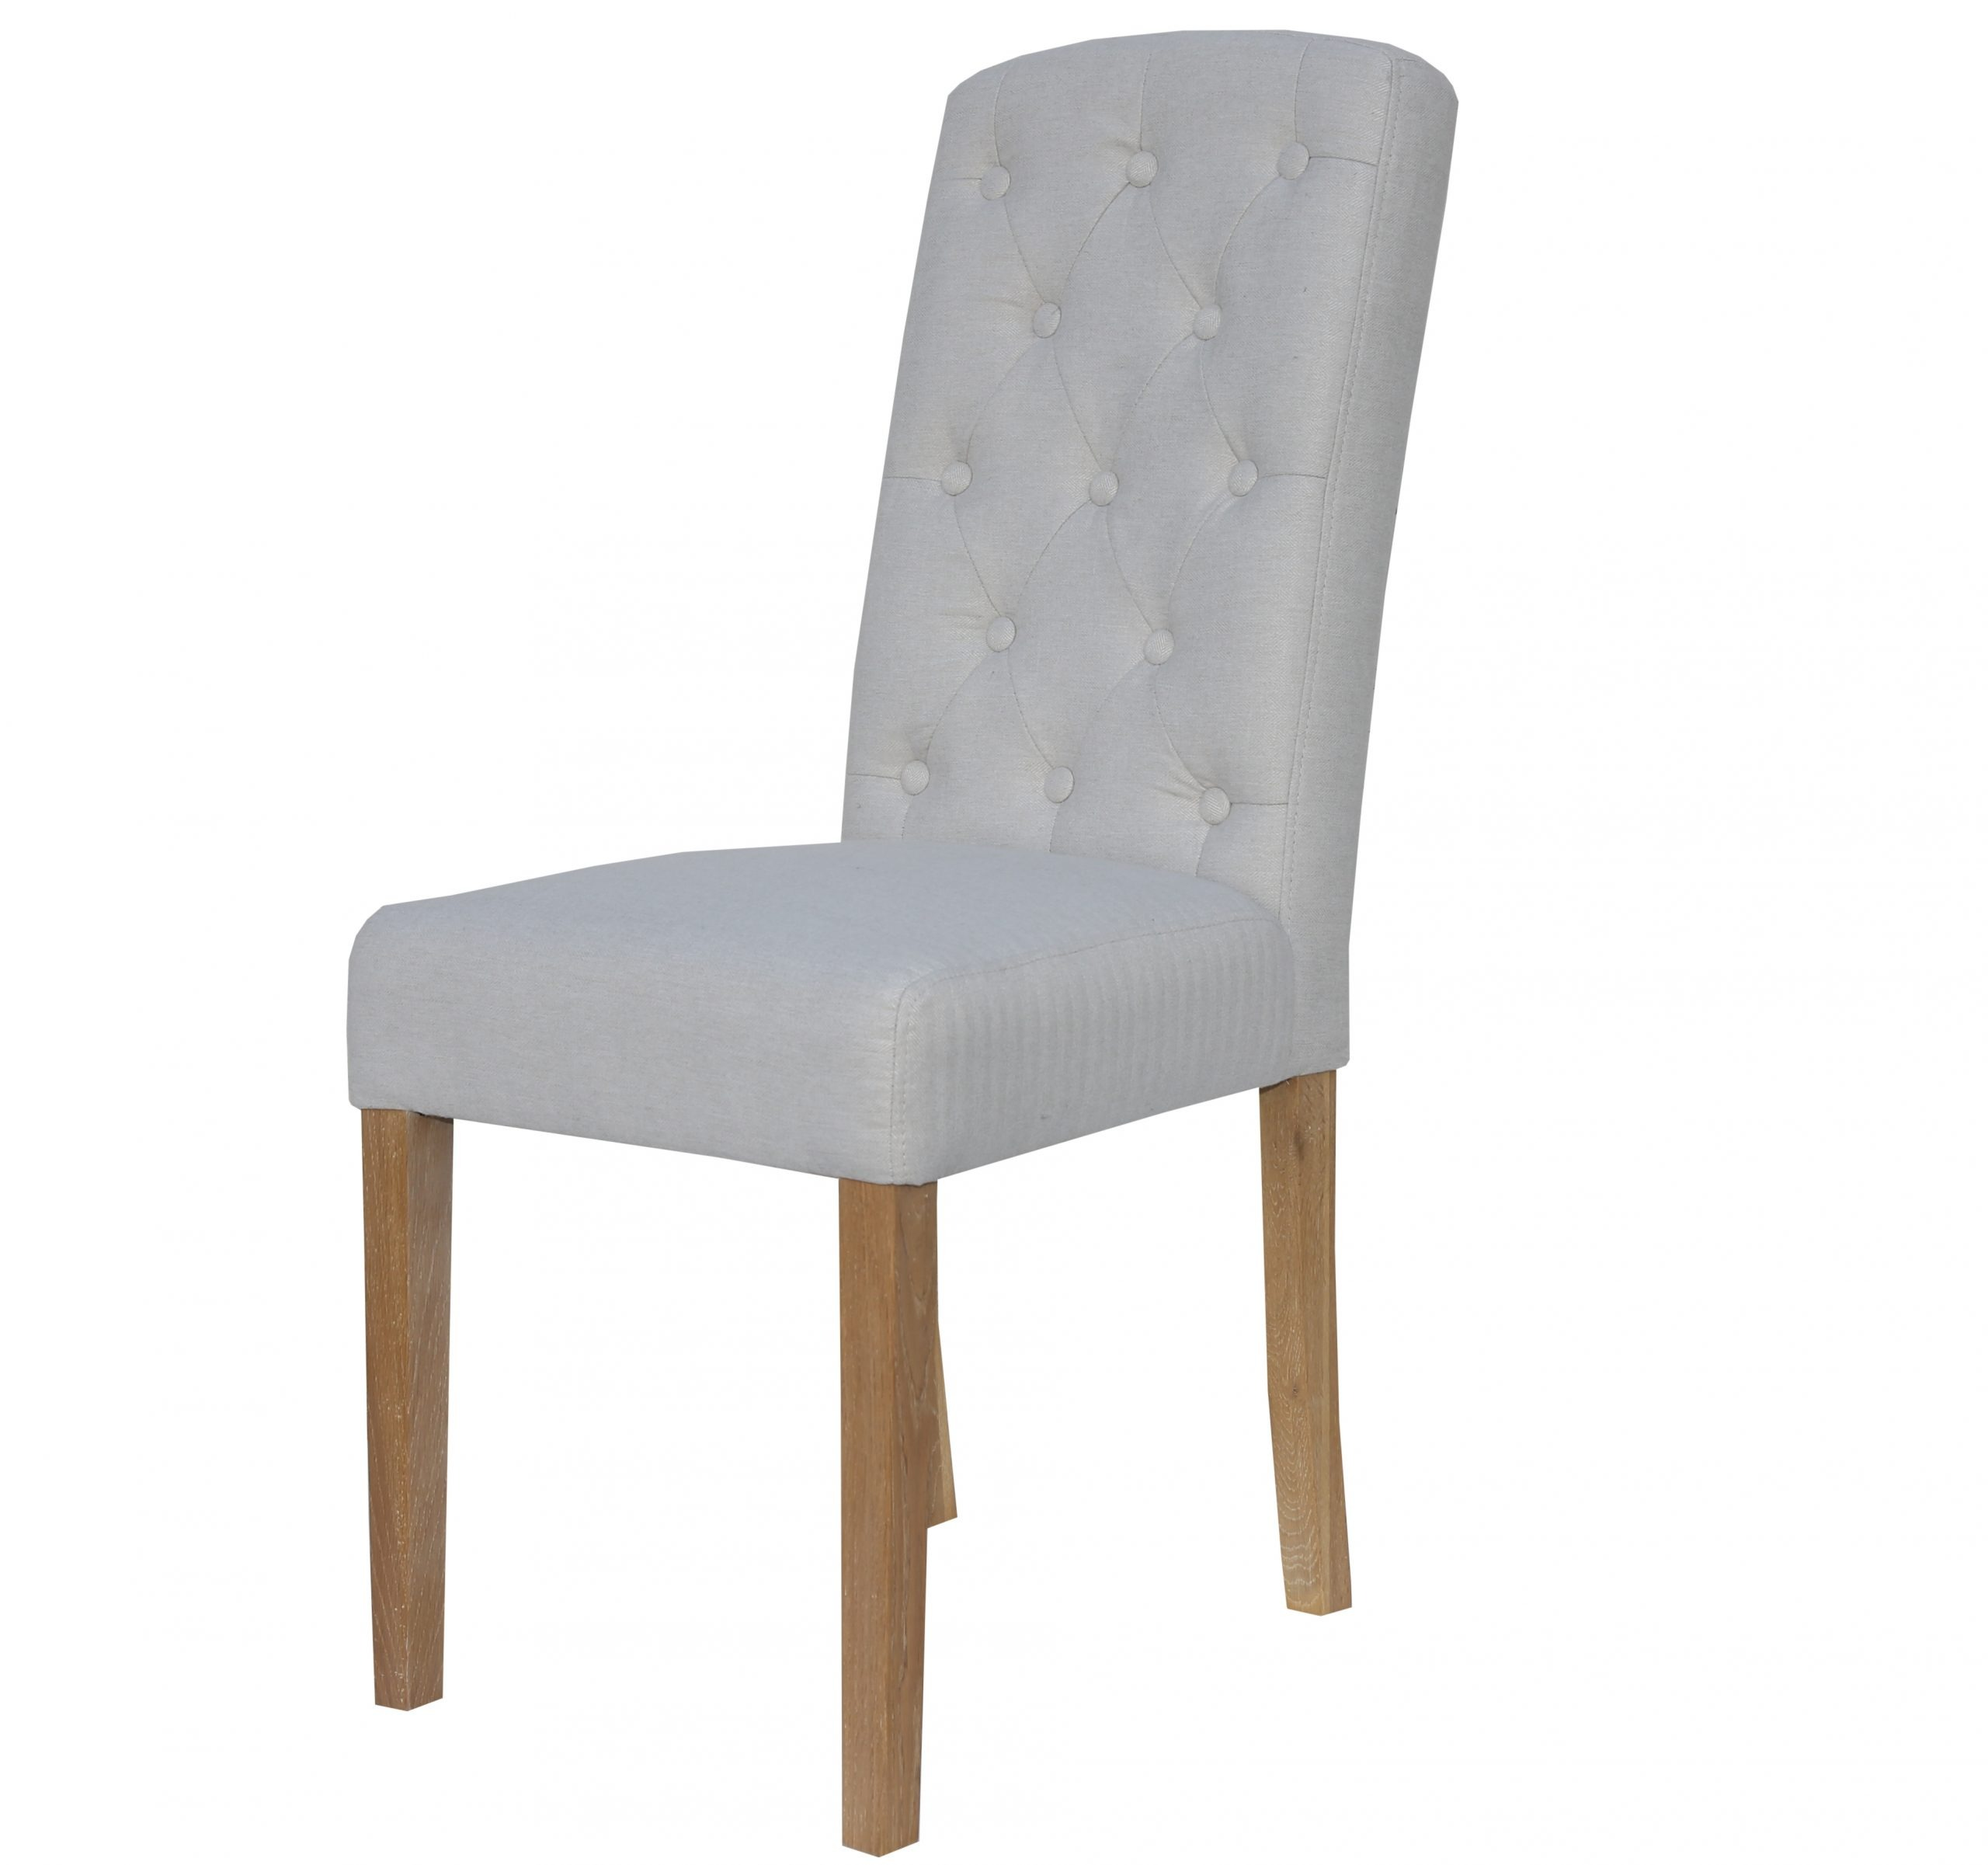 Windsor Cream herringbone dining chair